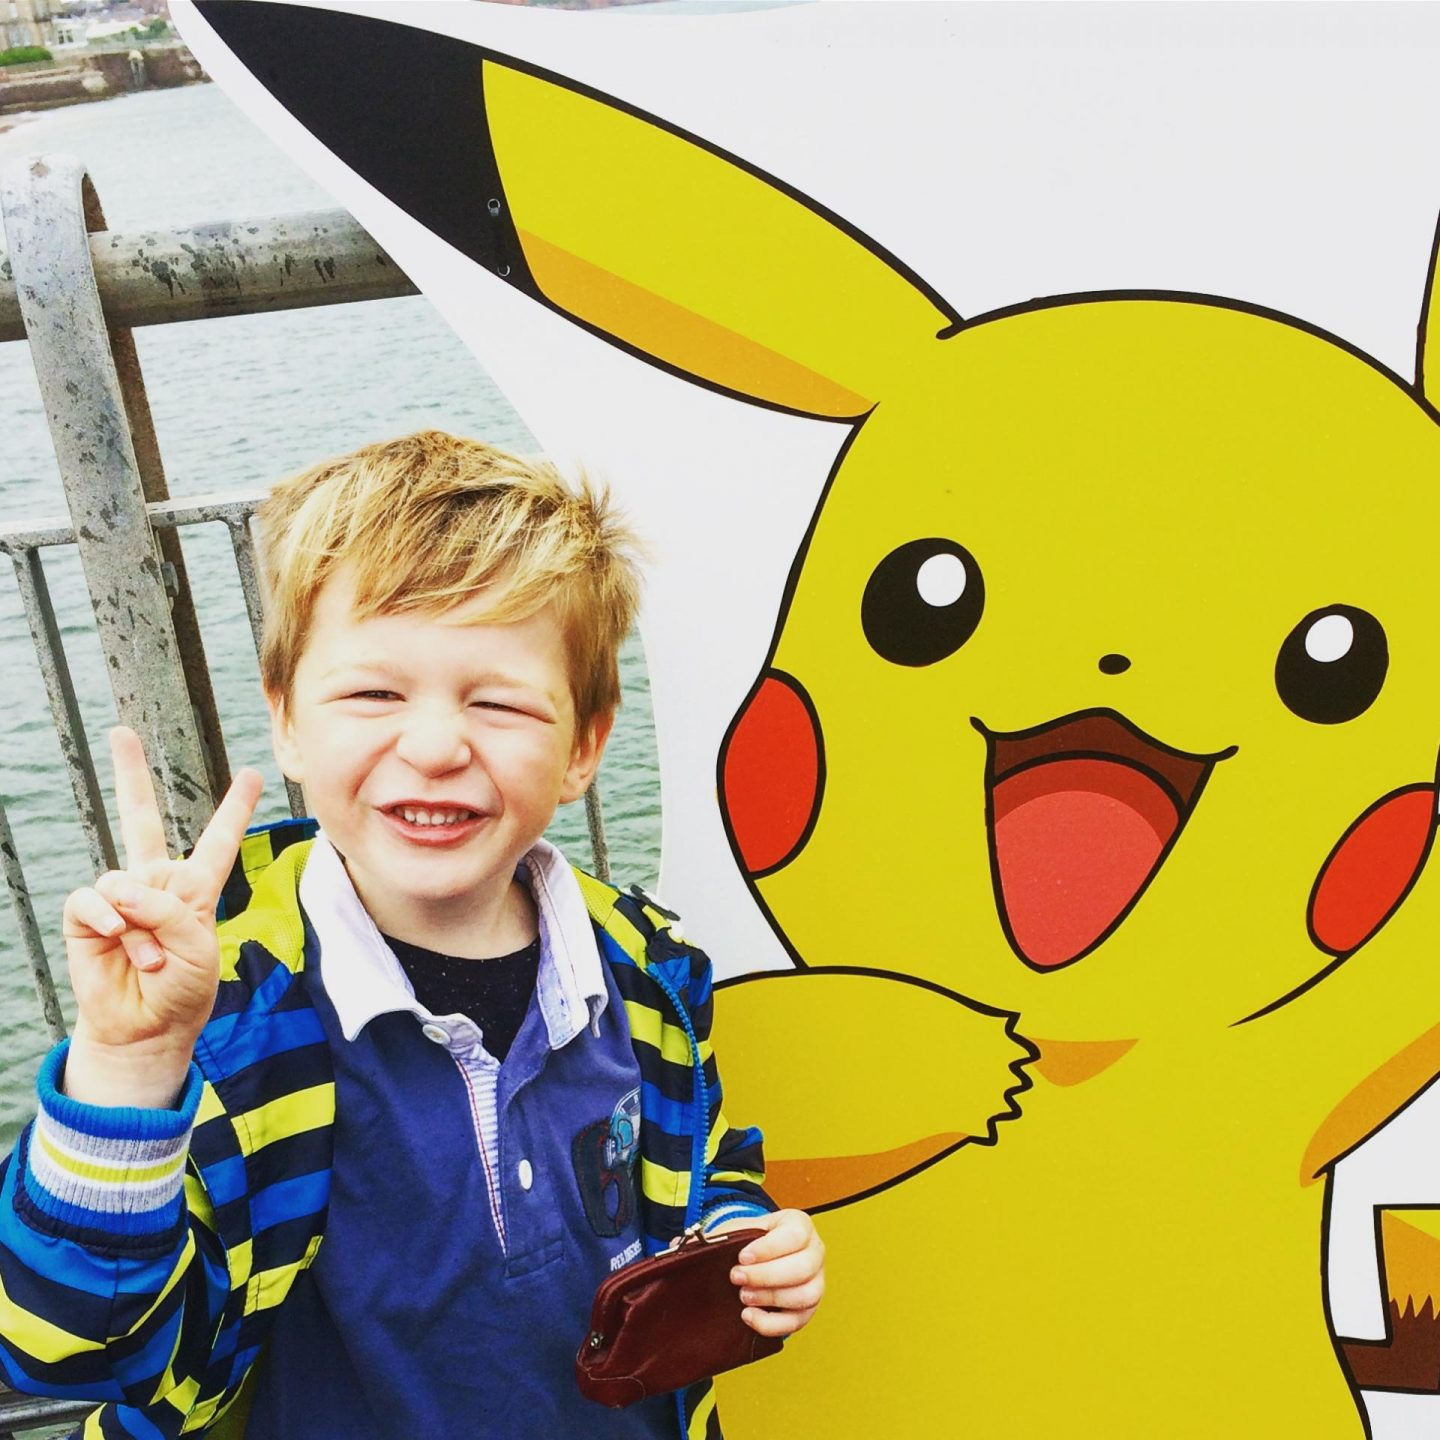 Little boy smiling waring a yellow coat infront of a large Picachu poster